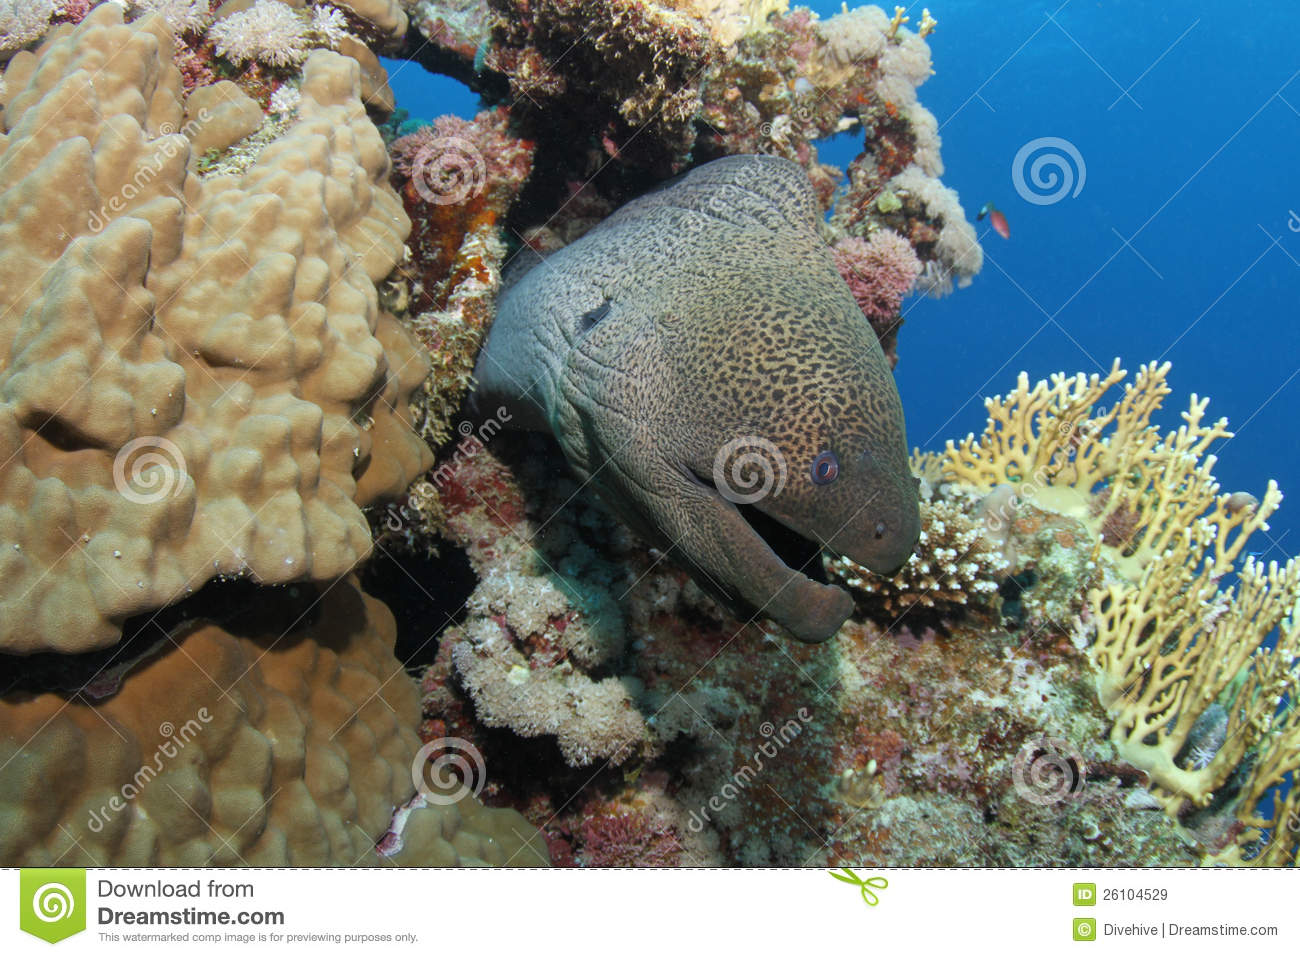 Giant moray eel hiding in tropical reef